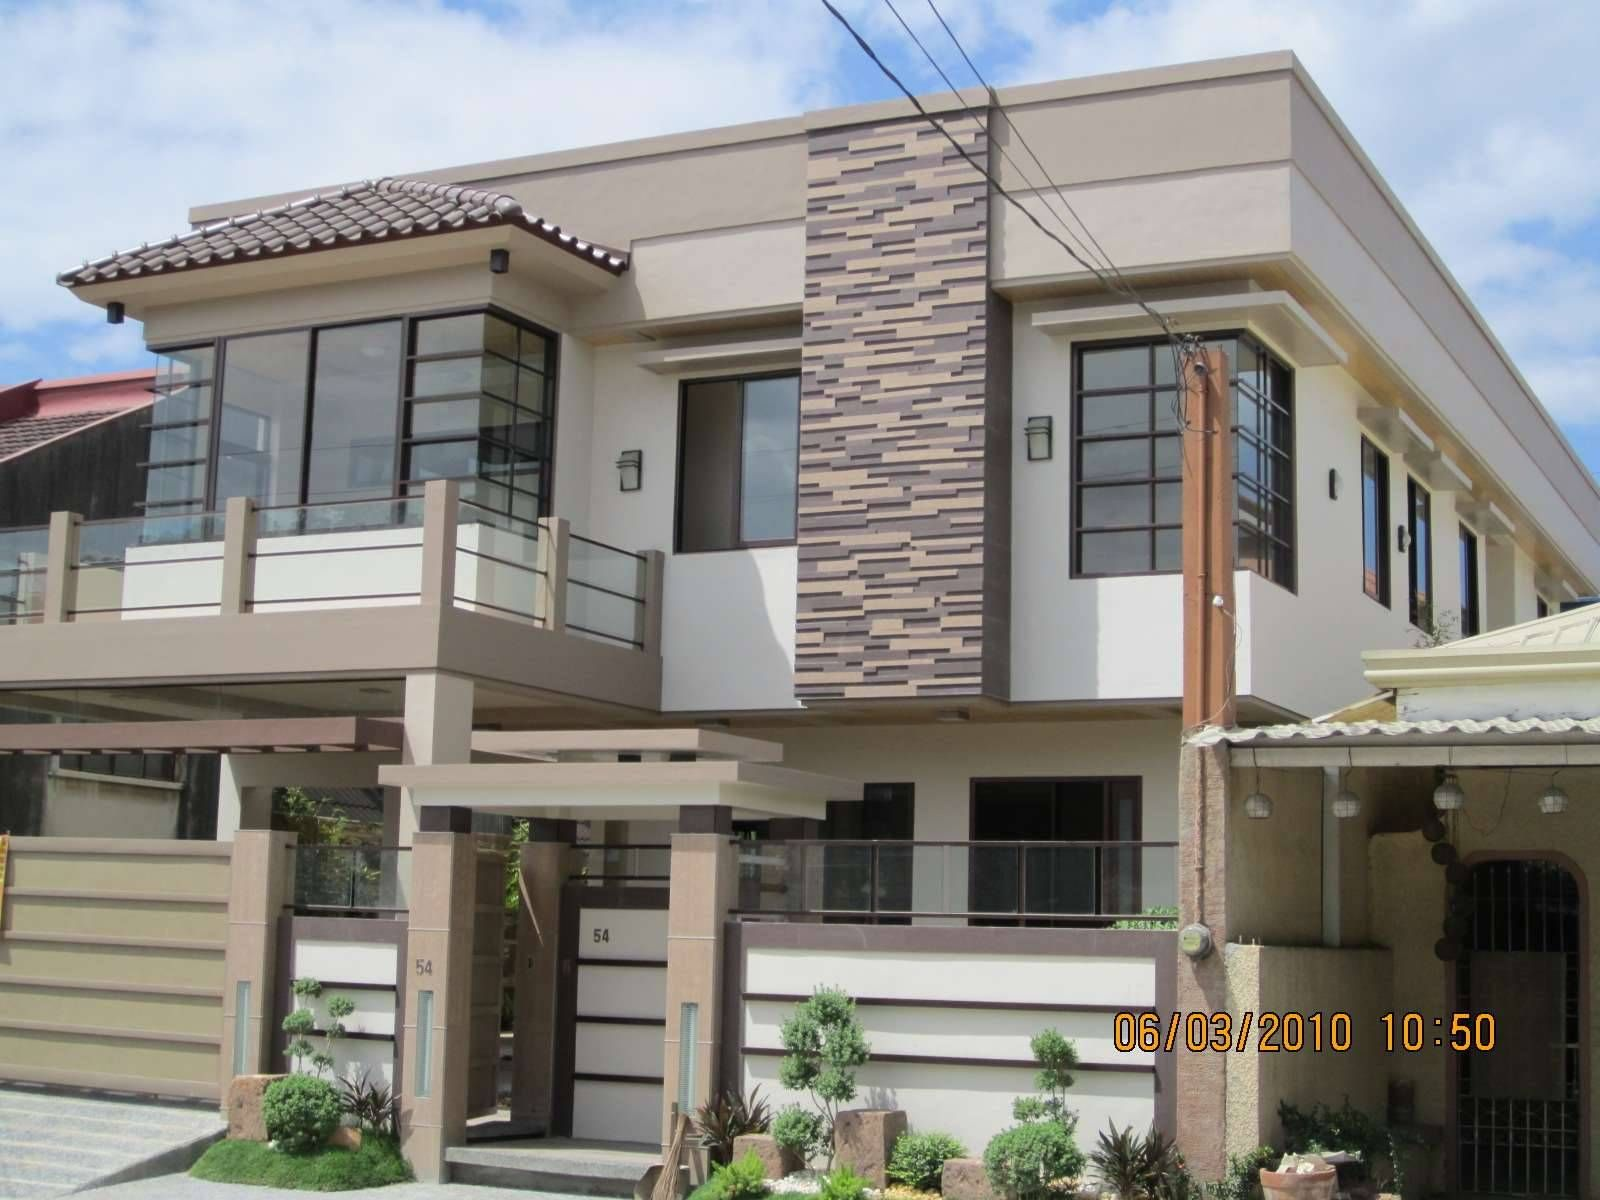 Philippines modern house exterior design dream house for Small house interior and exterior design